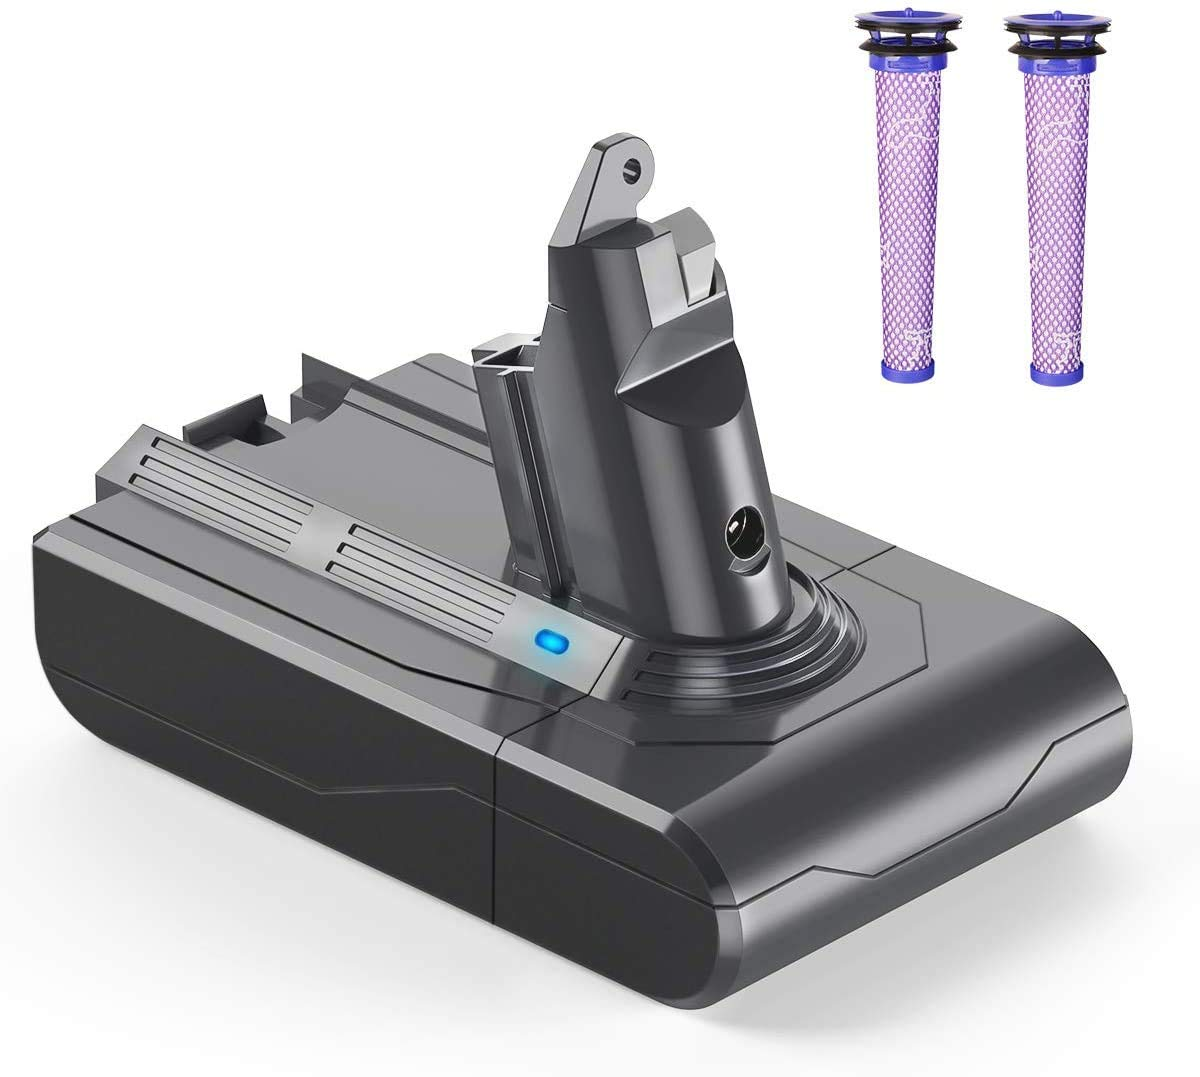 YABER Dyson V6 Battery Replacement 4000mAh for Dyson V6 DC59 DC58 DC61 DC62 Animal DC72 DC74 595 650 770 880 Handheld Vacuum Cleaner with 2 Pack Imported Pre-Filters